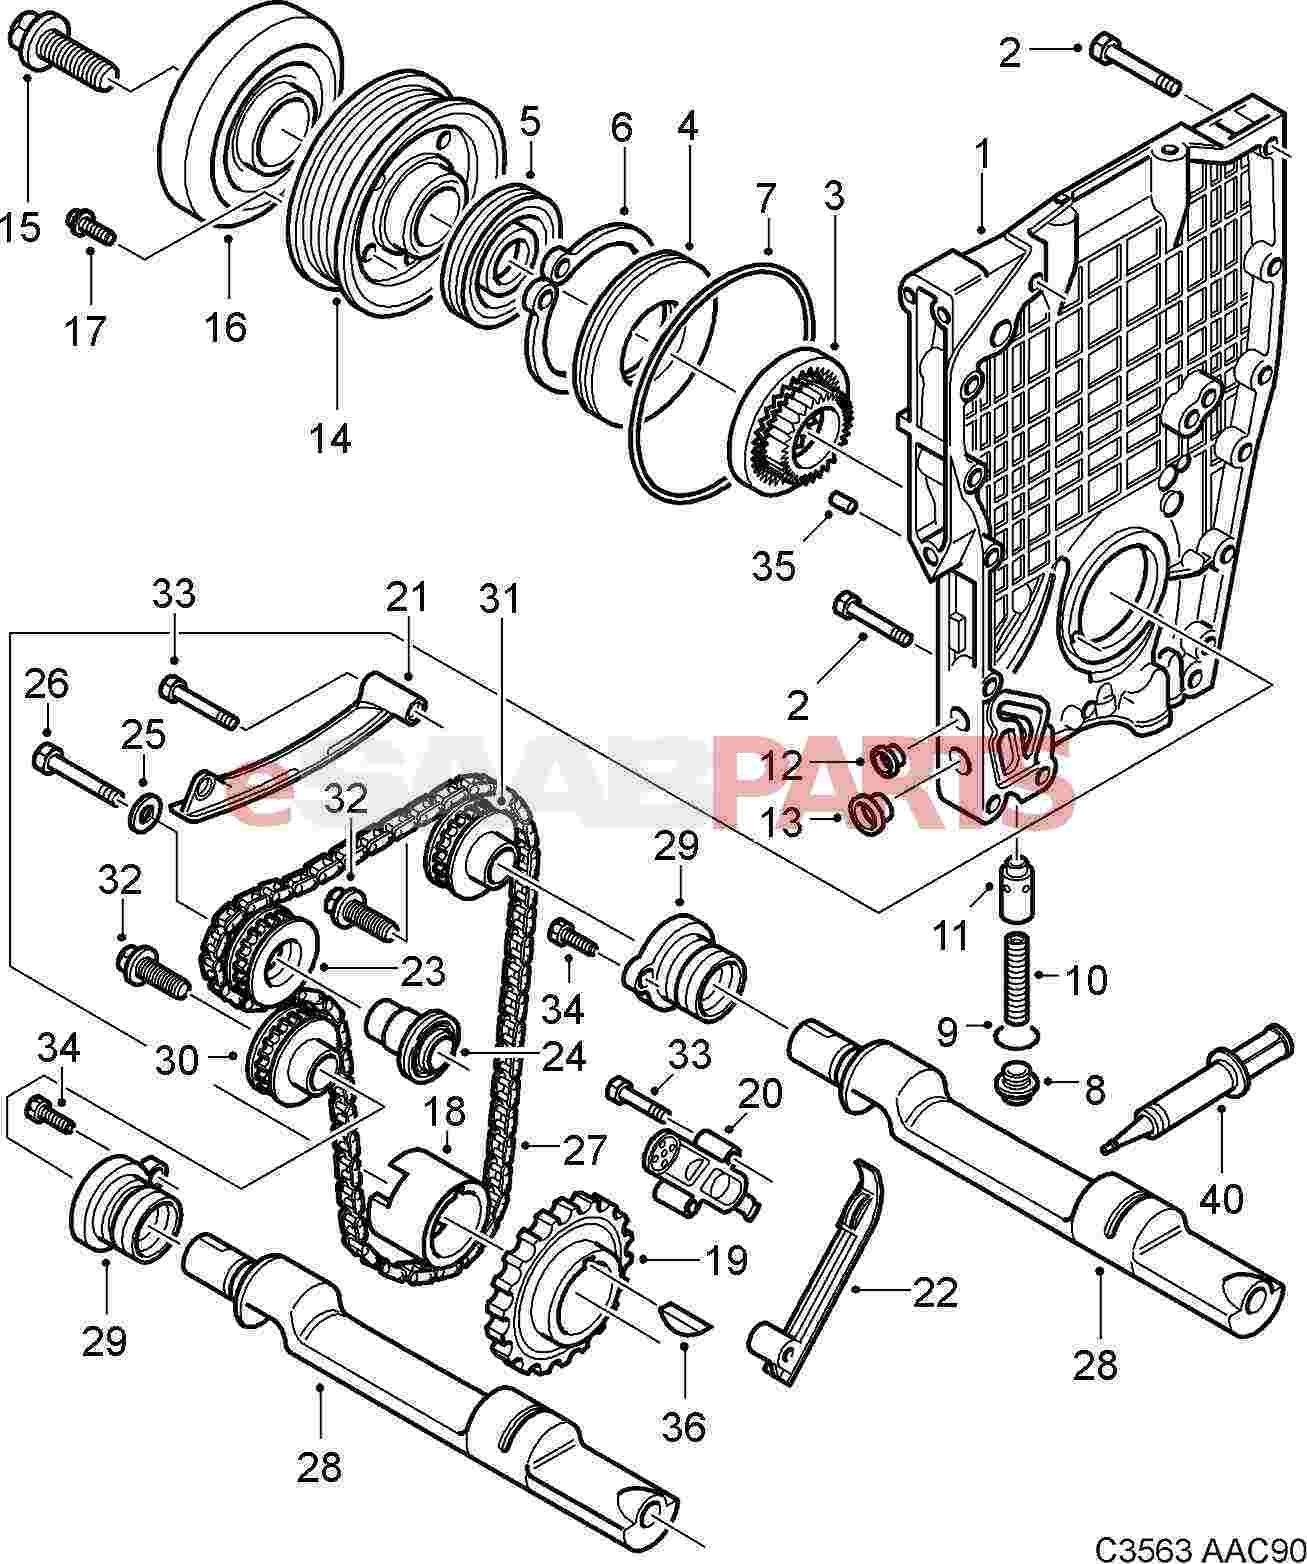 Saab 900 Transmission Diagram Wiring Diagrams Engine Porsche 944 Esaabparts Com